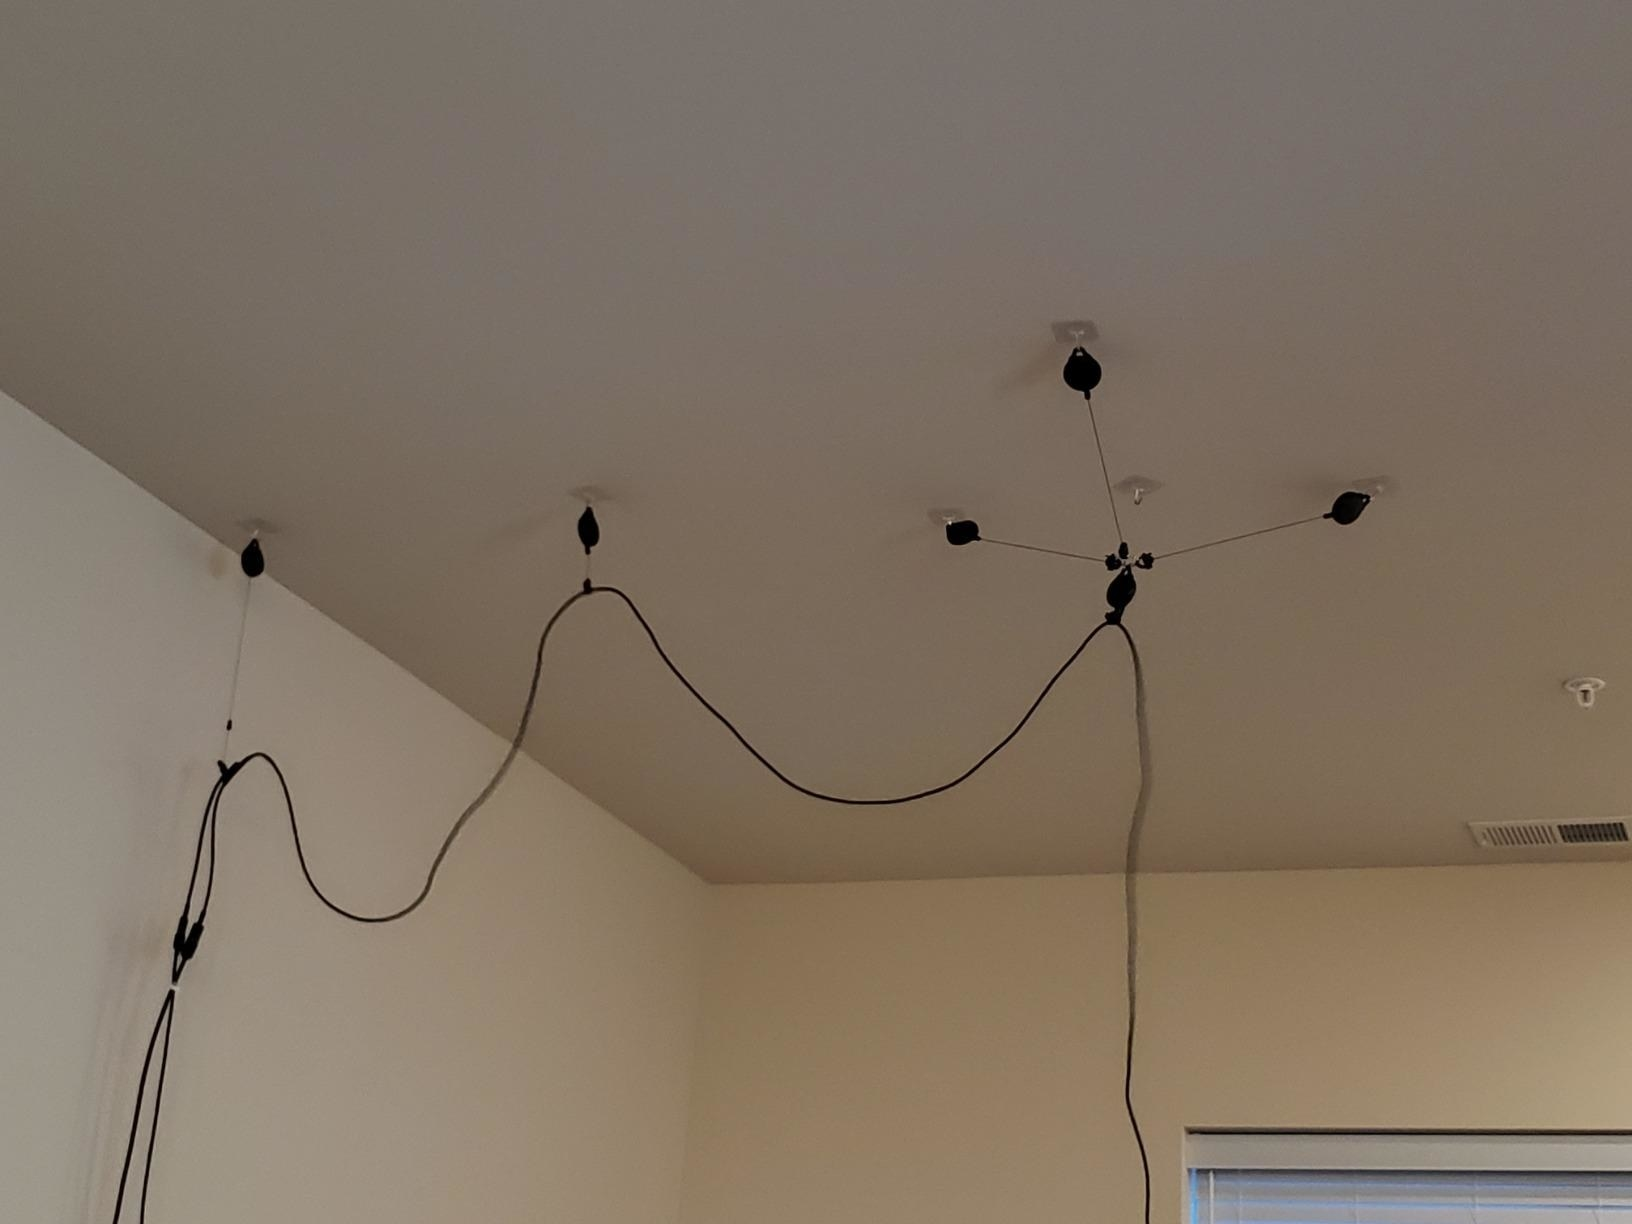 Reviewer photo of their cables attached to pulleys on the ceiling